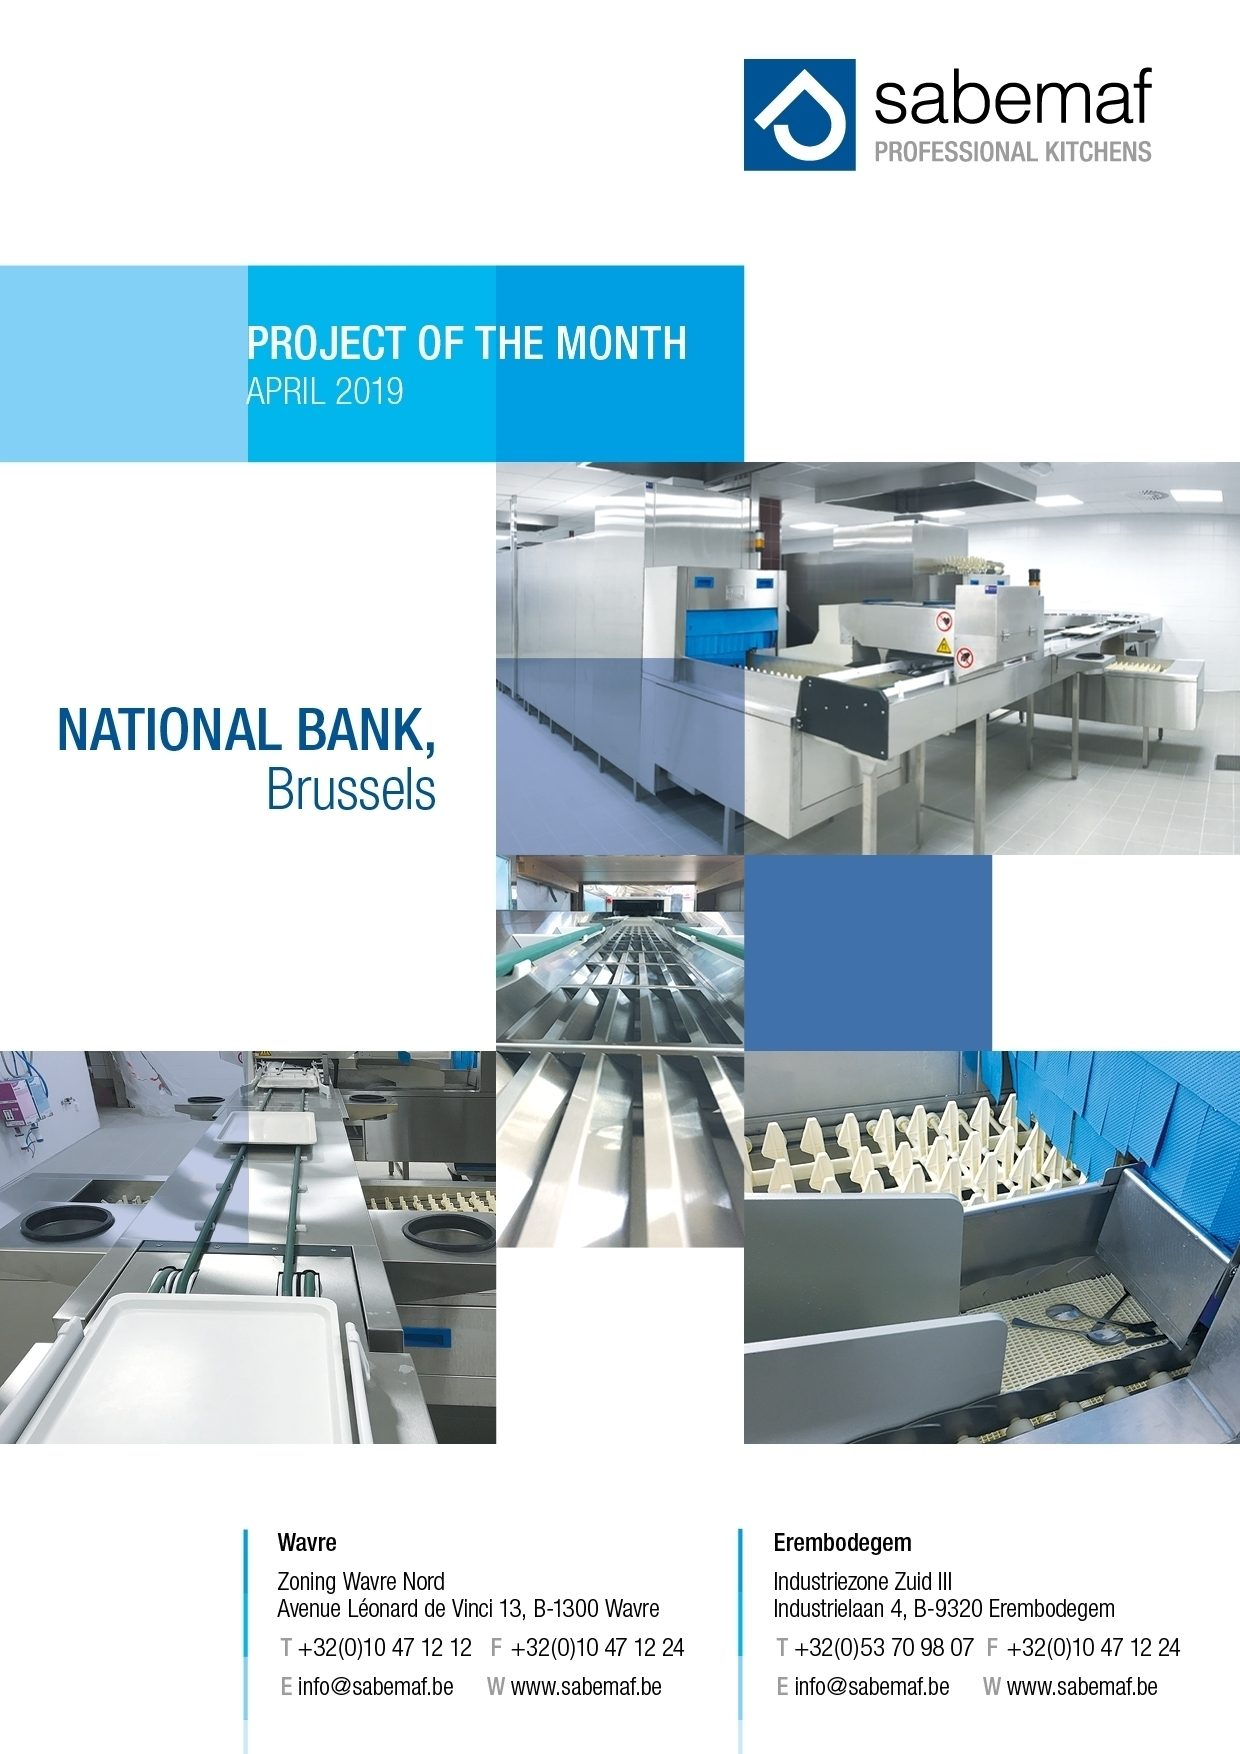 Project of the month, April 2019, National Bank, Brussels